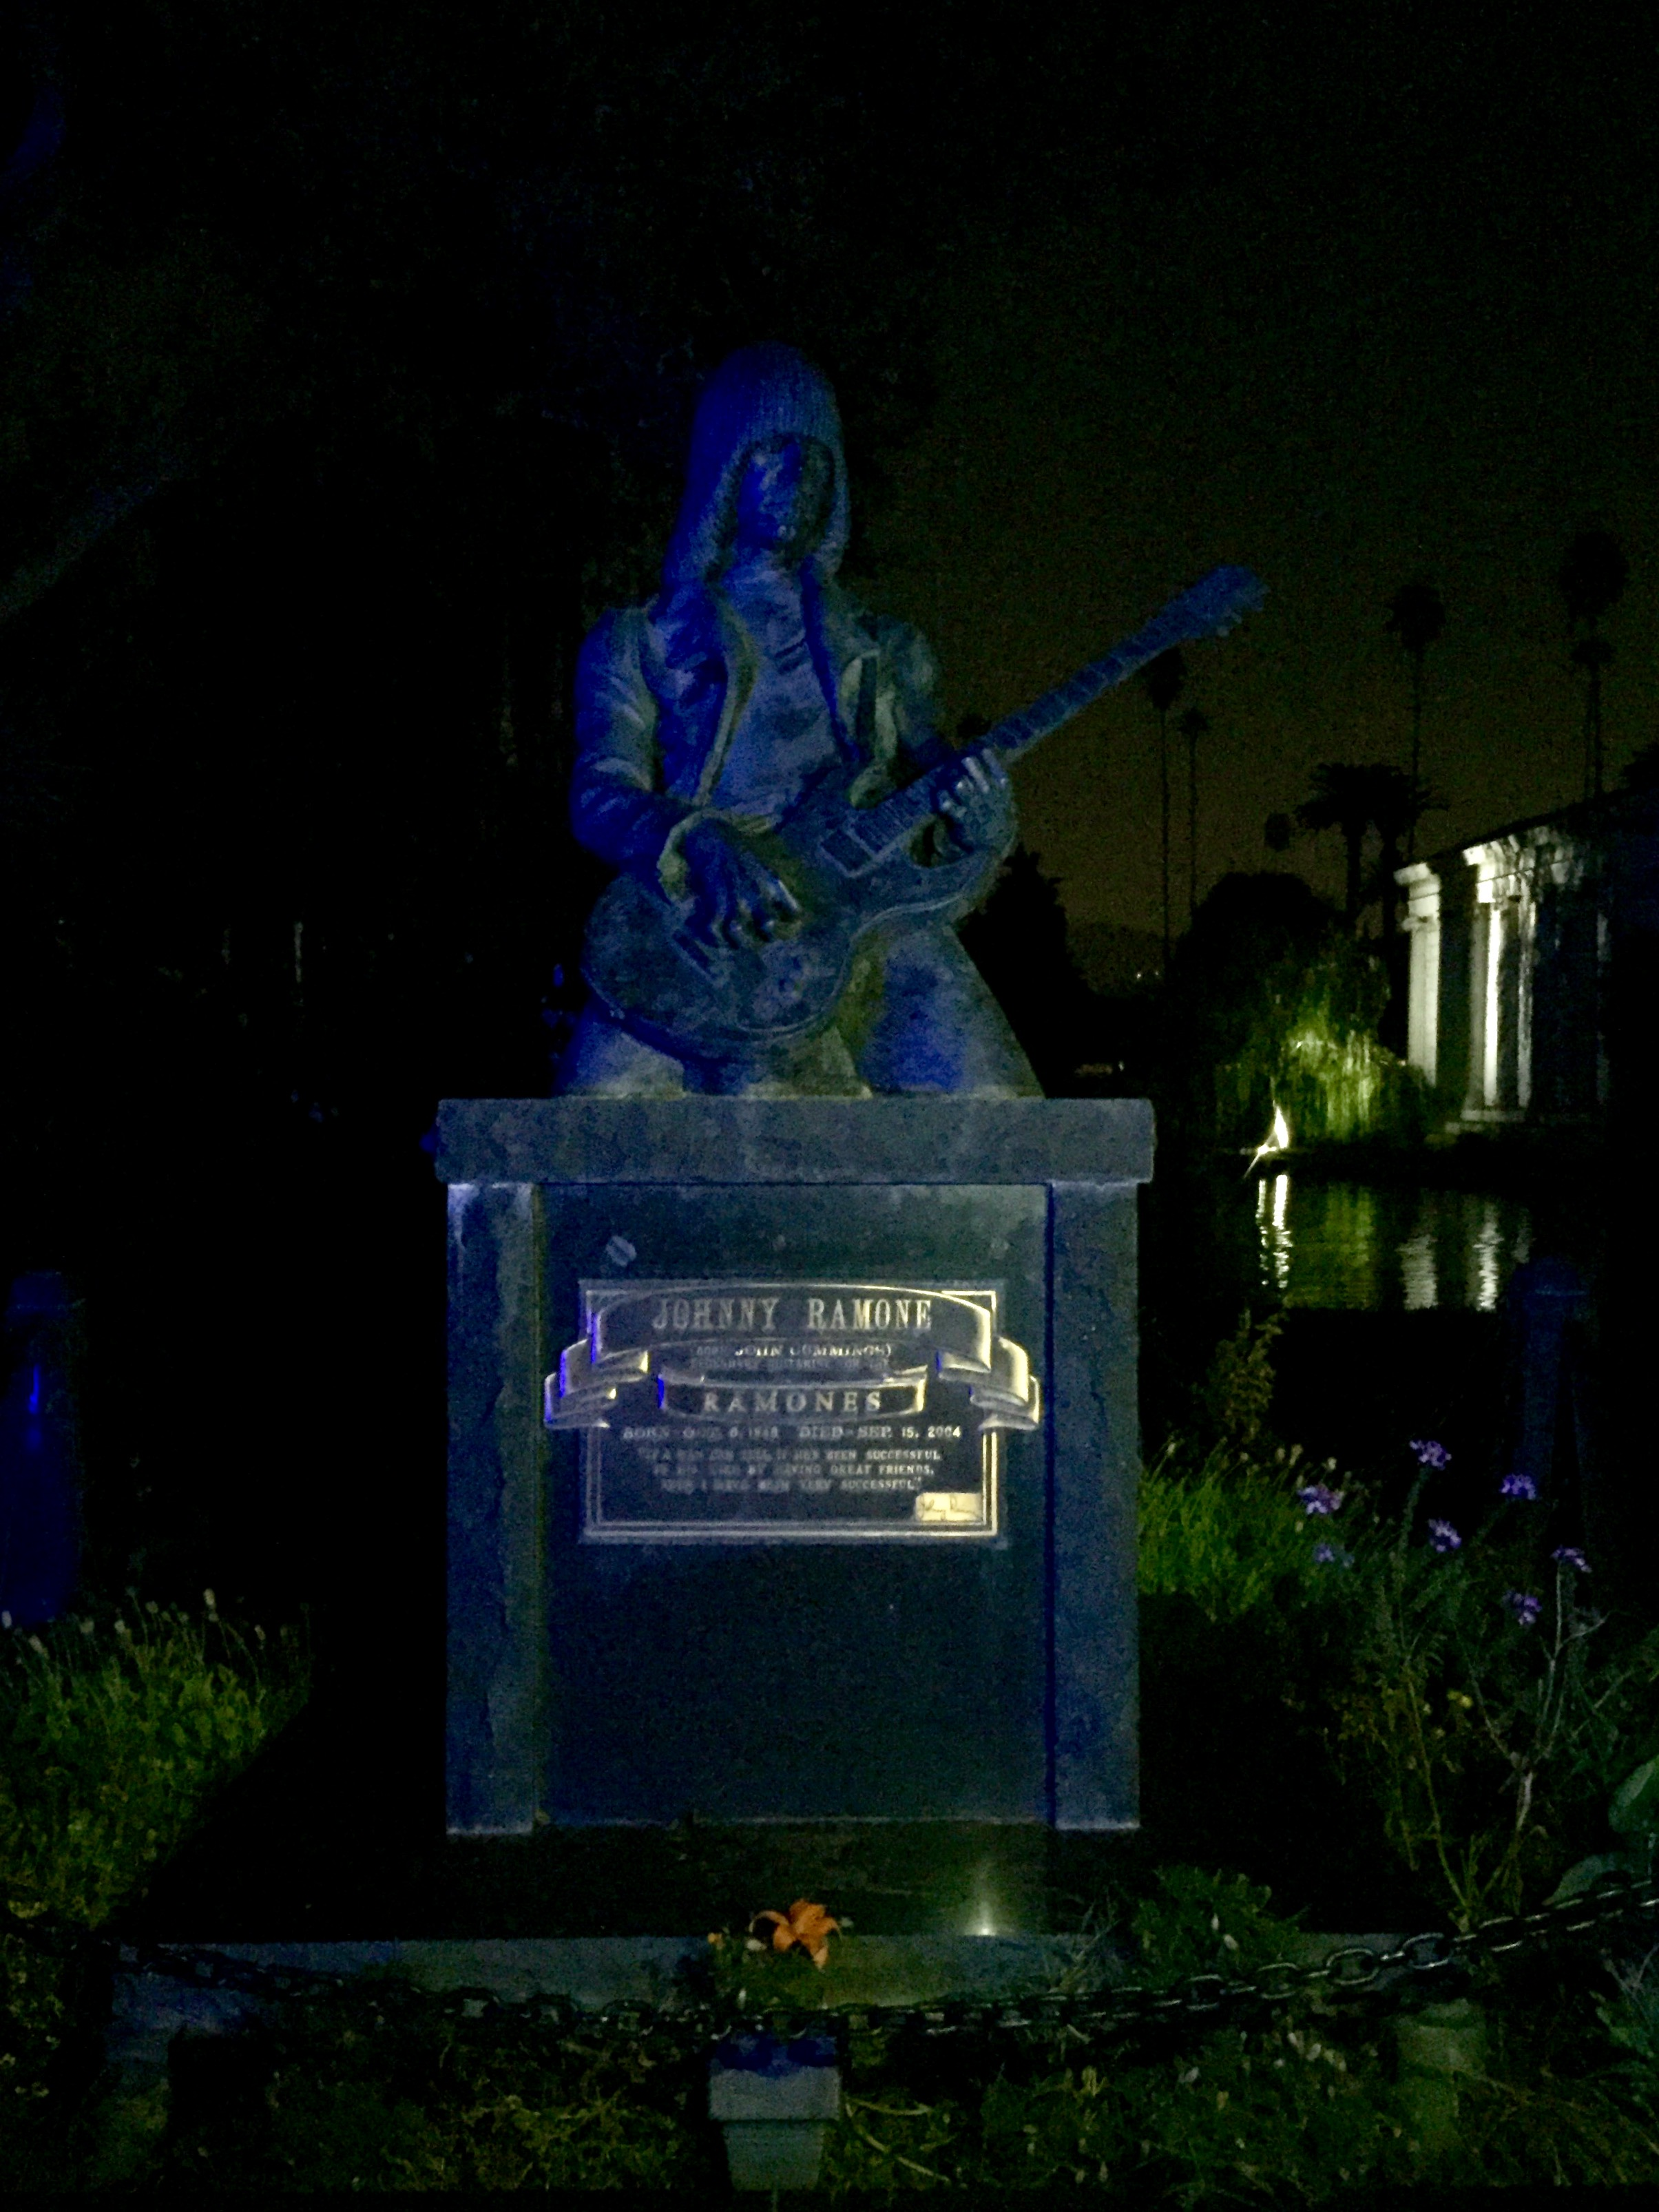 Hollywood Forever Cemetery #johnnyramonegrave